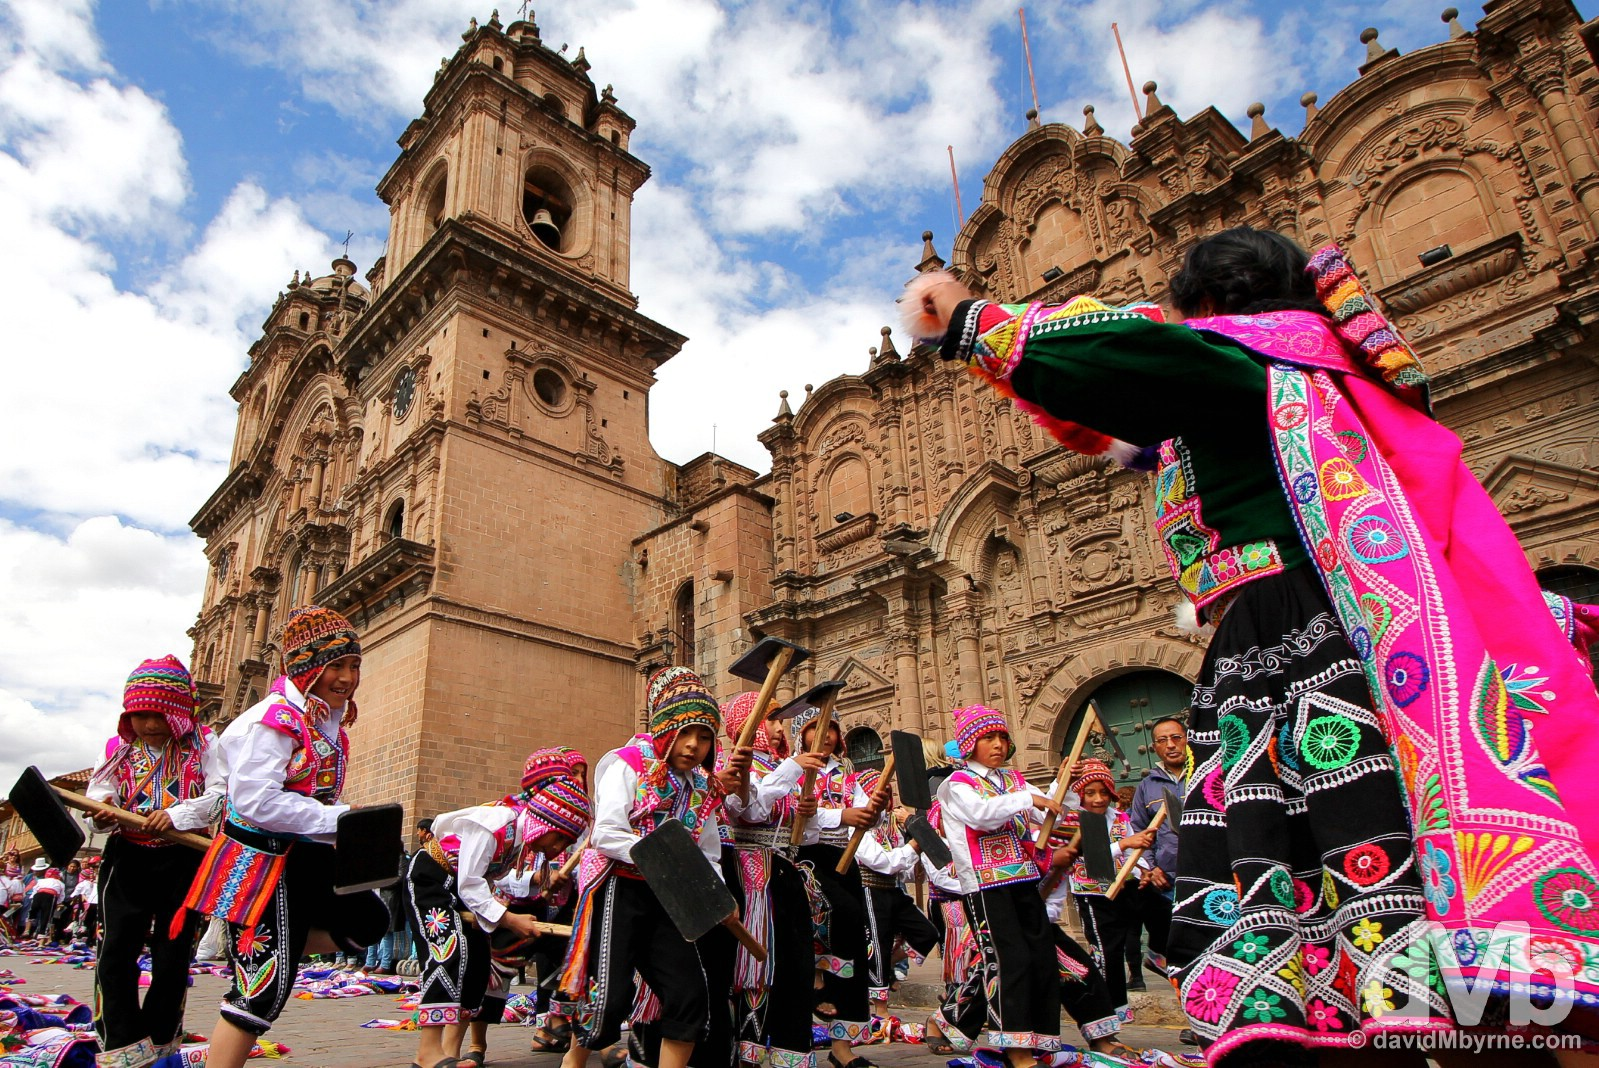 Festival activity outside the twin-towered La Compania de Jesus on Plaza de Armas, Cusco, Peru. August 16, 2015.